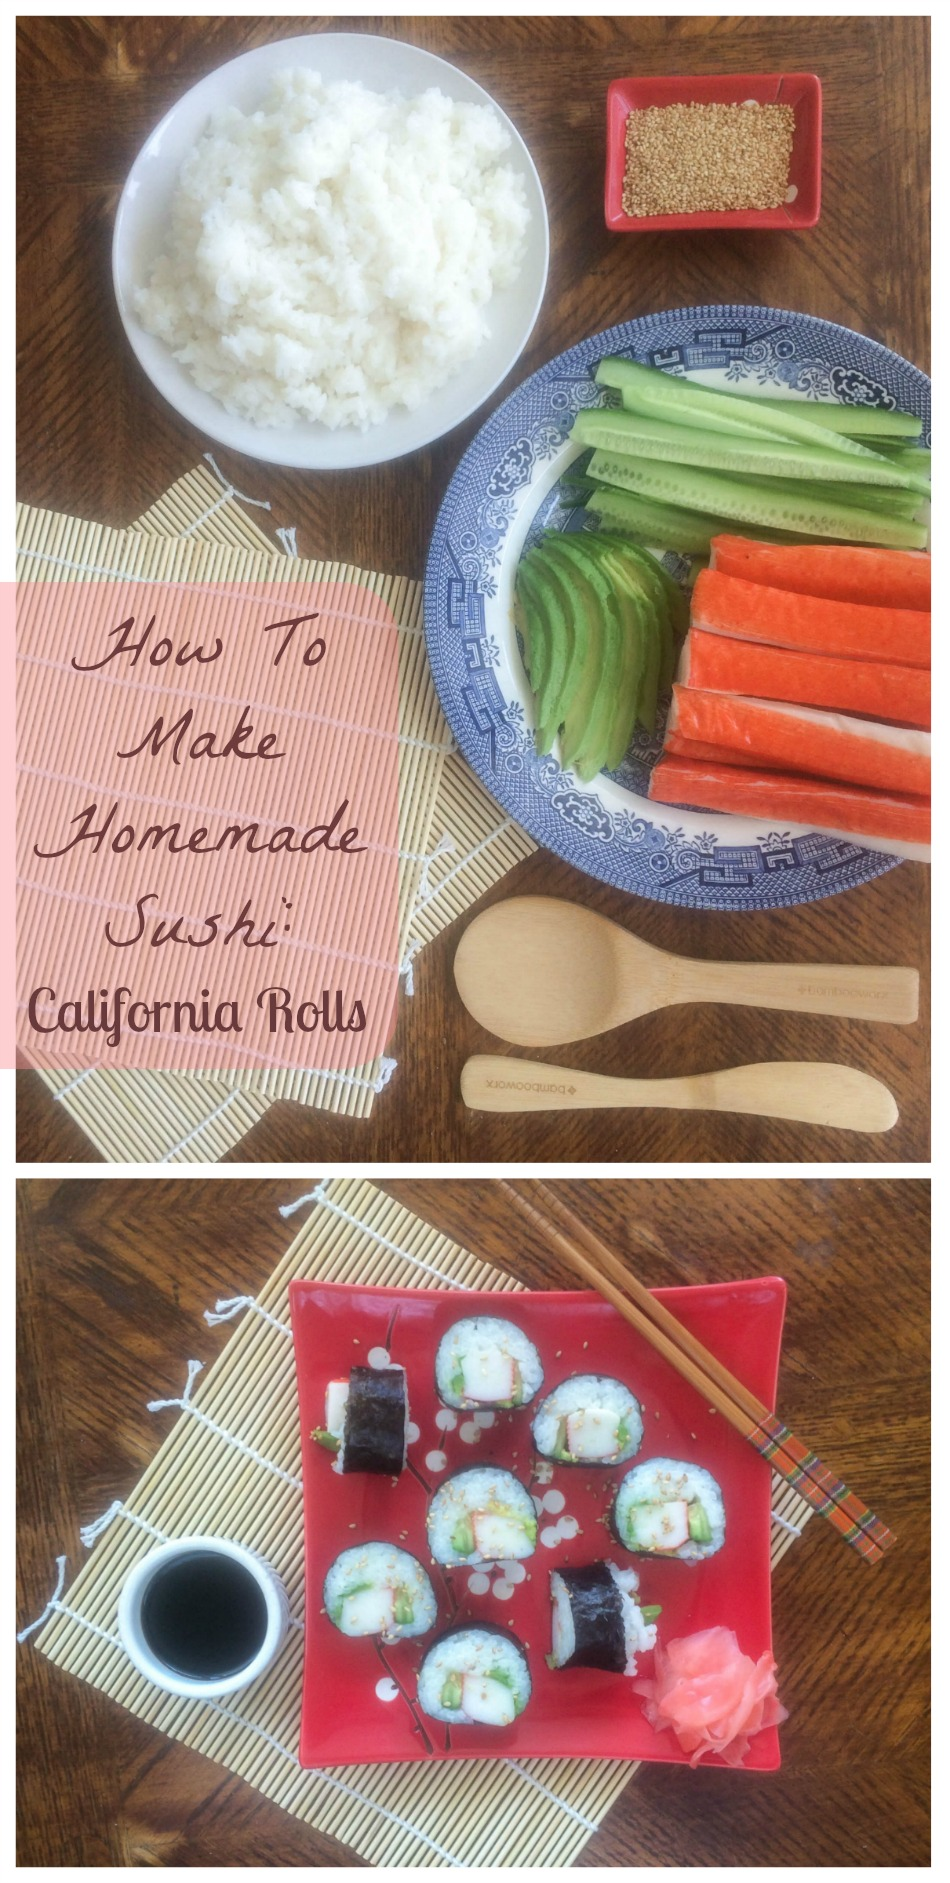 Do you love sushi? Check out my super simple recipe to make yourself a California Roll at home! It's really easy and you will wow any guests you have over! www.JessExplainsItAll.com